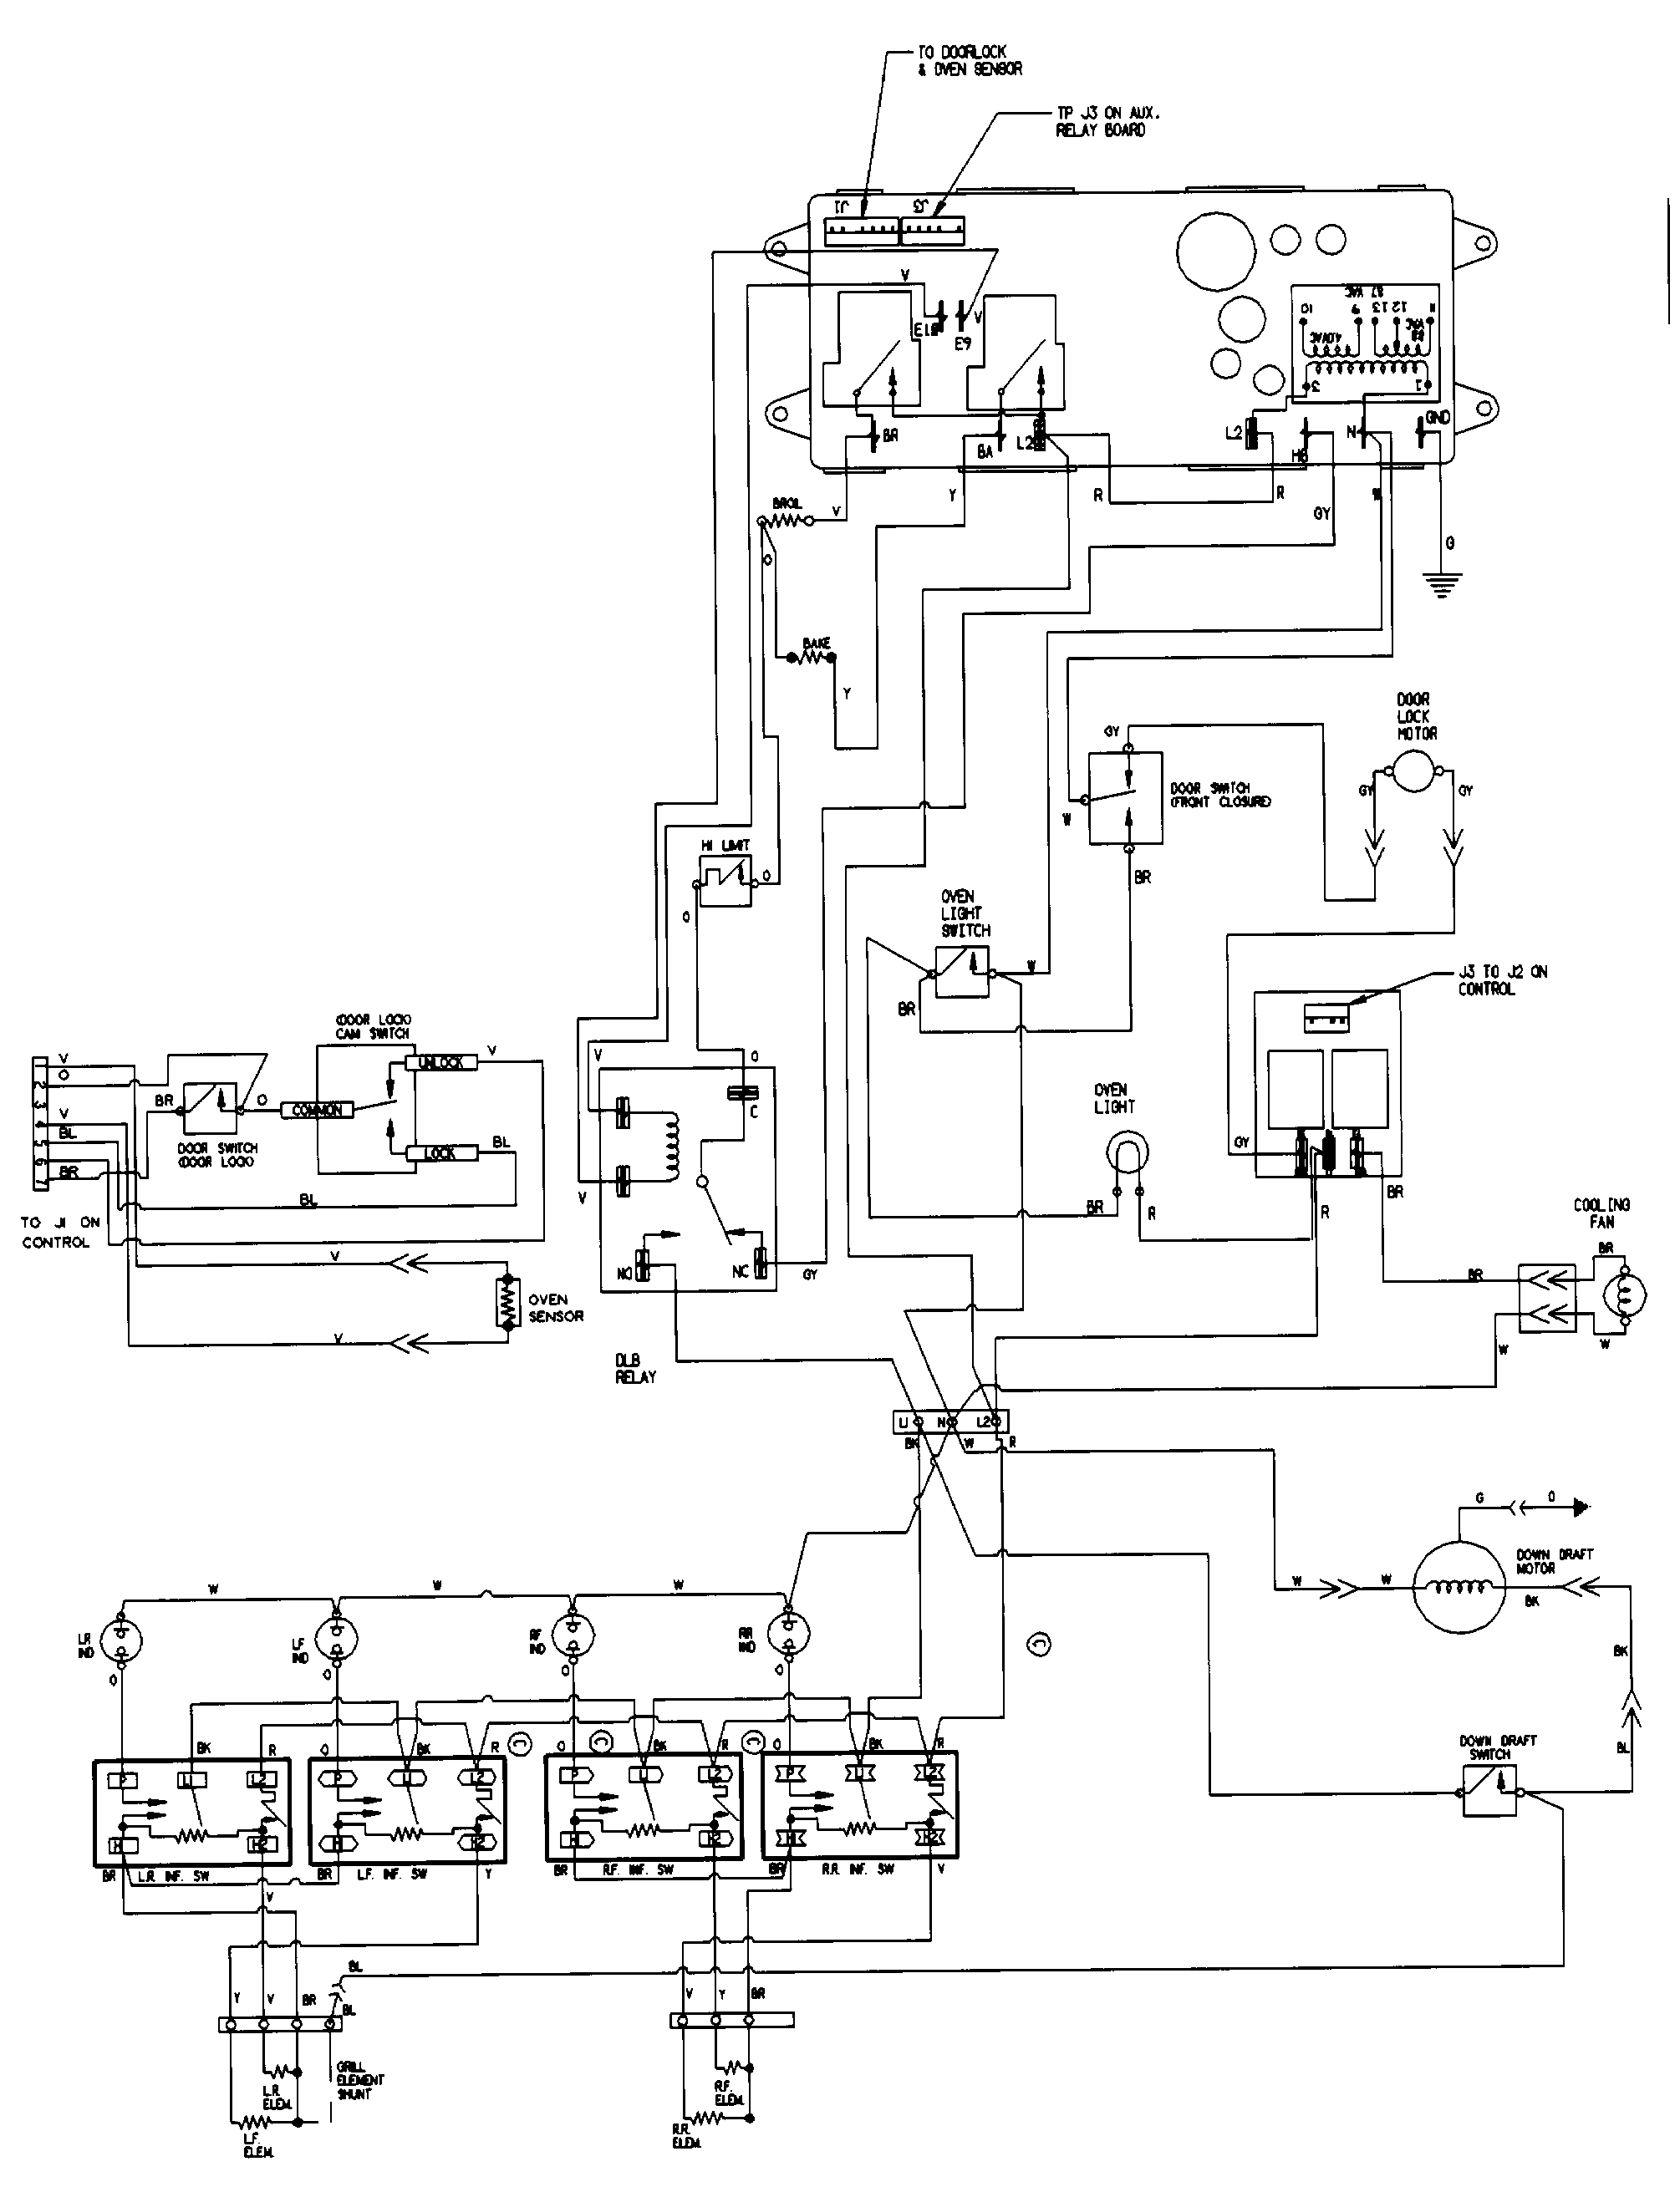 wiring information sve47100bc wc parts jenn air wiring diagram whirlpool range wiring diagram \u2022 wiring Frigidaire Oven Wiring Diagram at bakdesigns.co